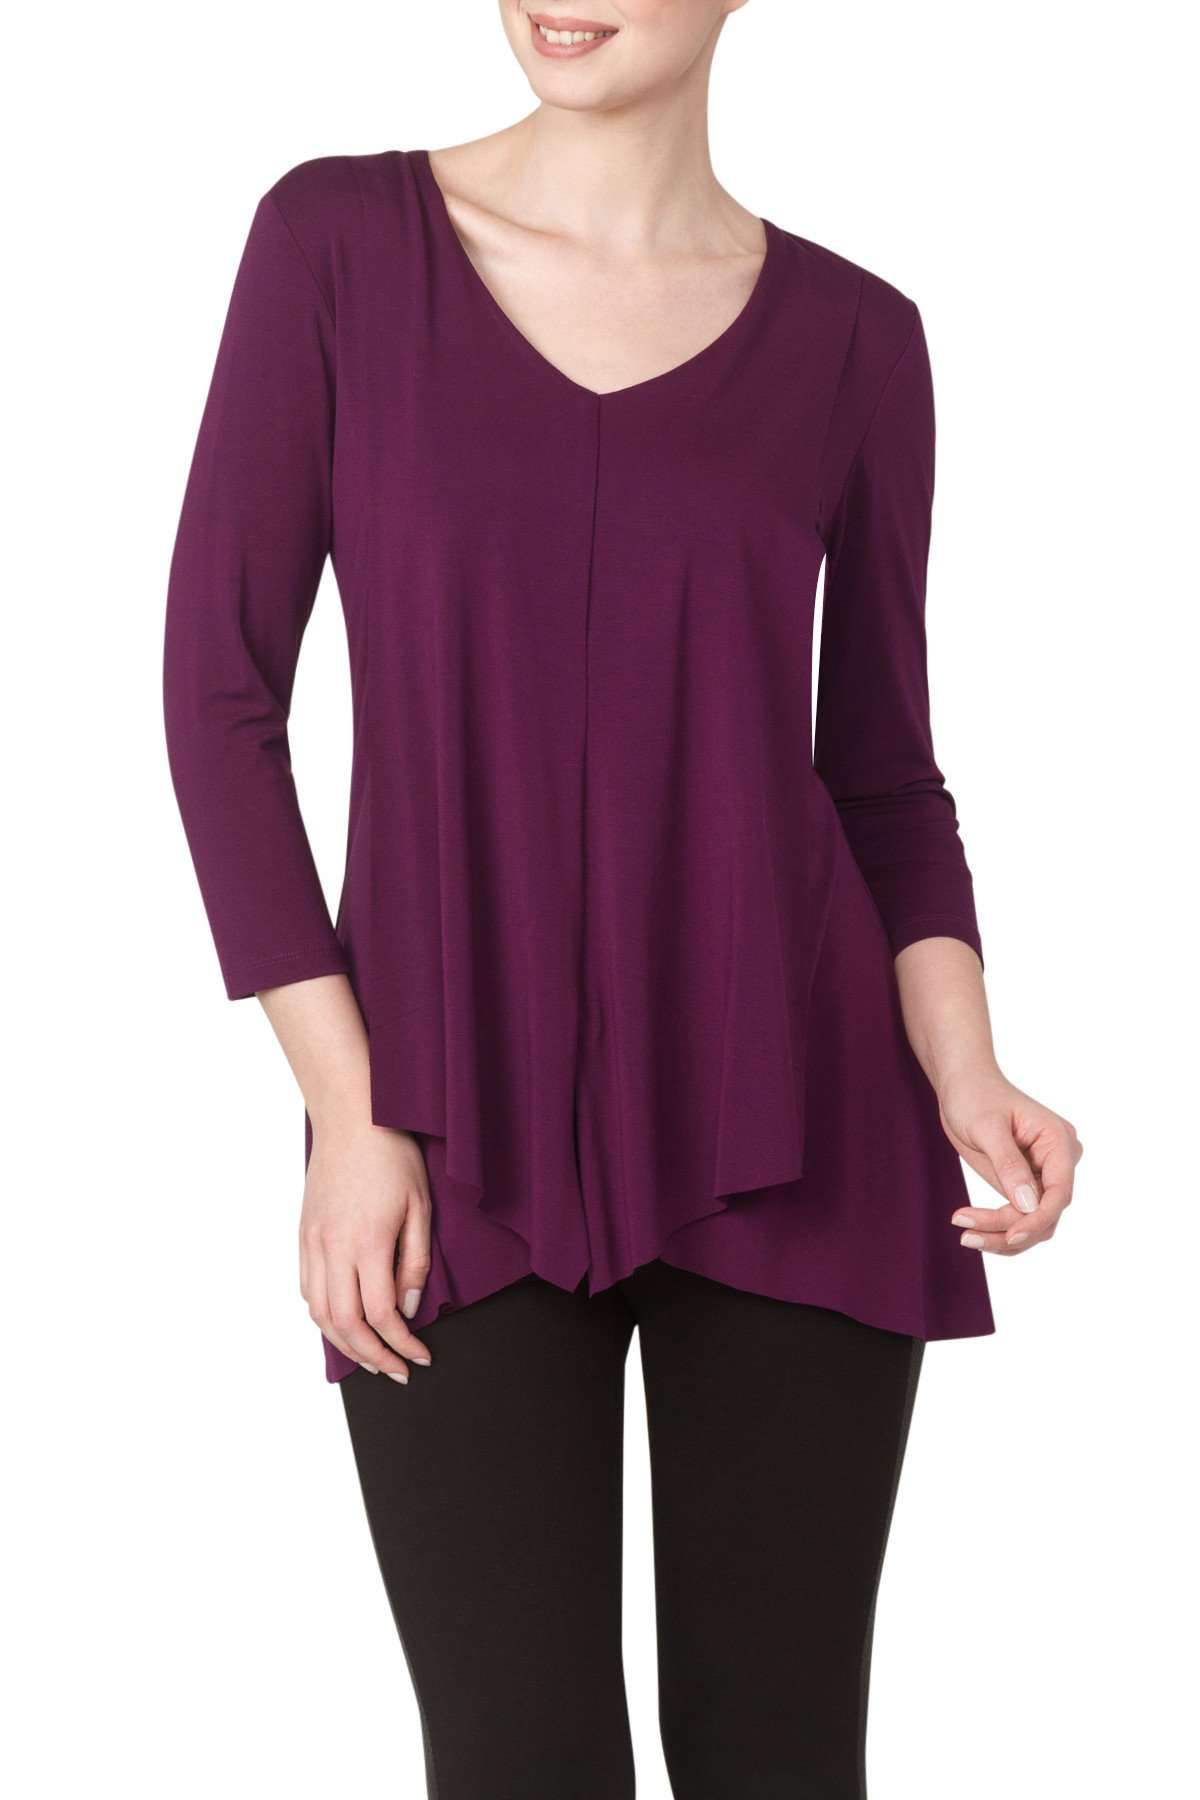 Burgundy Wine Longer Length Top with Draped Front Detail - Yvonne Marie